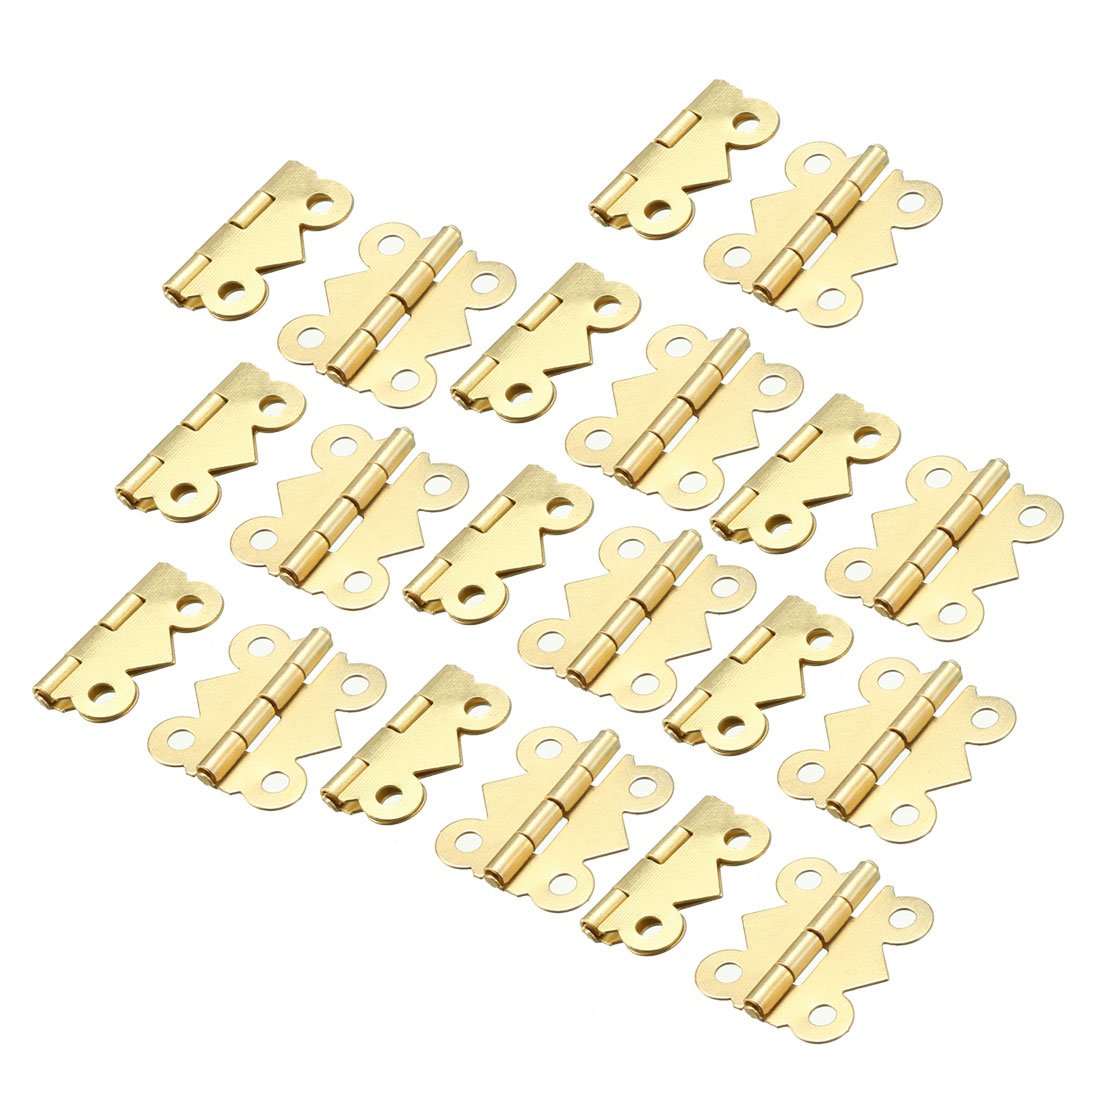 20 Pcs Brass Tone Rotatable Window Drawer Door Butt Hinges 2cm Long